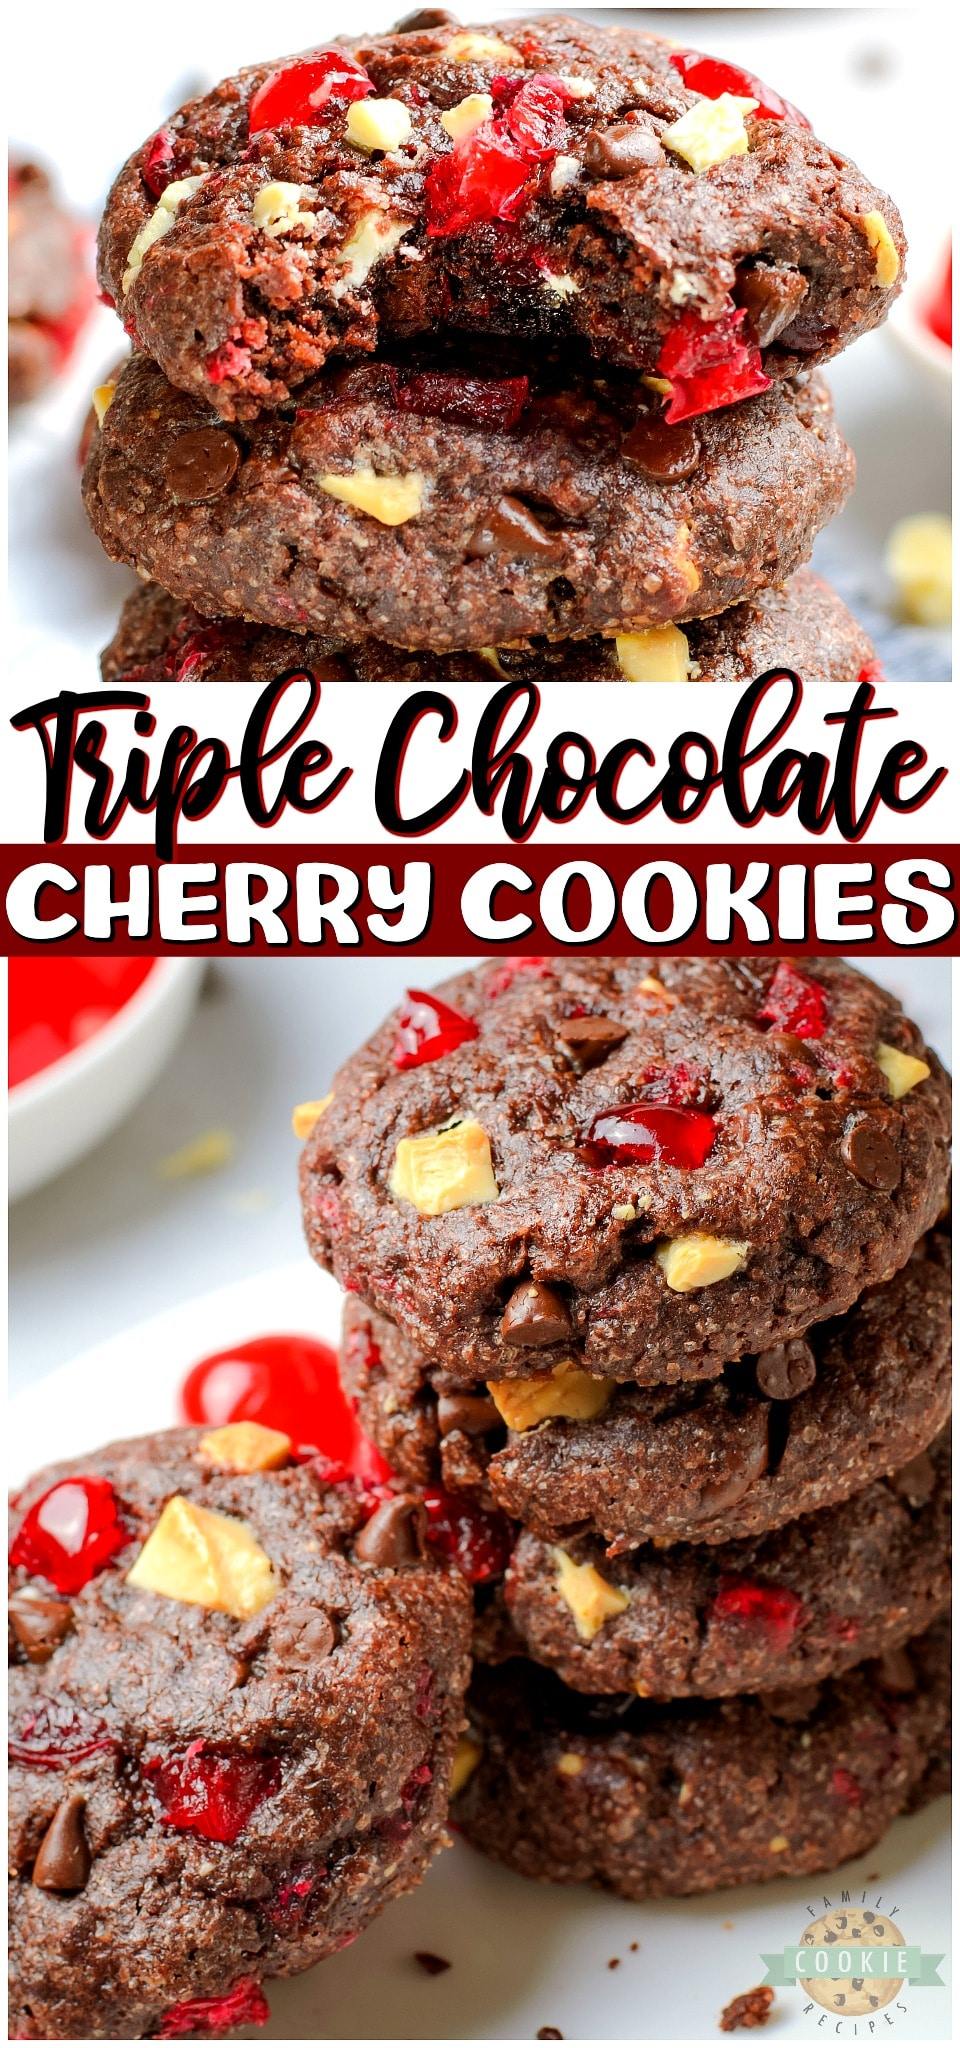 Triple Chocolate Cherry Cookies are Black Forest Cake in cookie form! Soft & chewy chocolate cookies full of white and dark chocolate chips & cherry bits with lovely flavor!